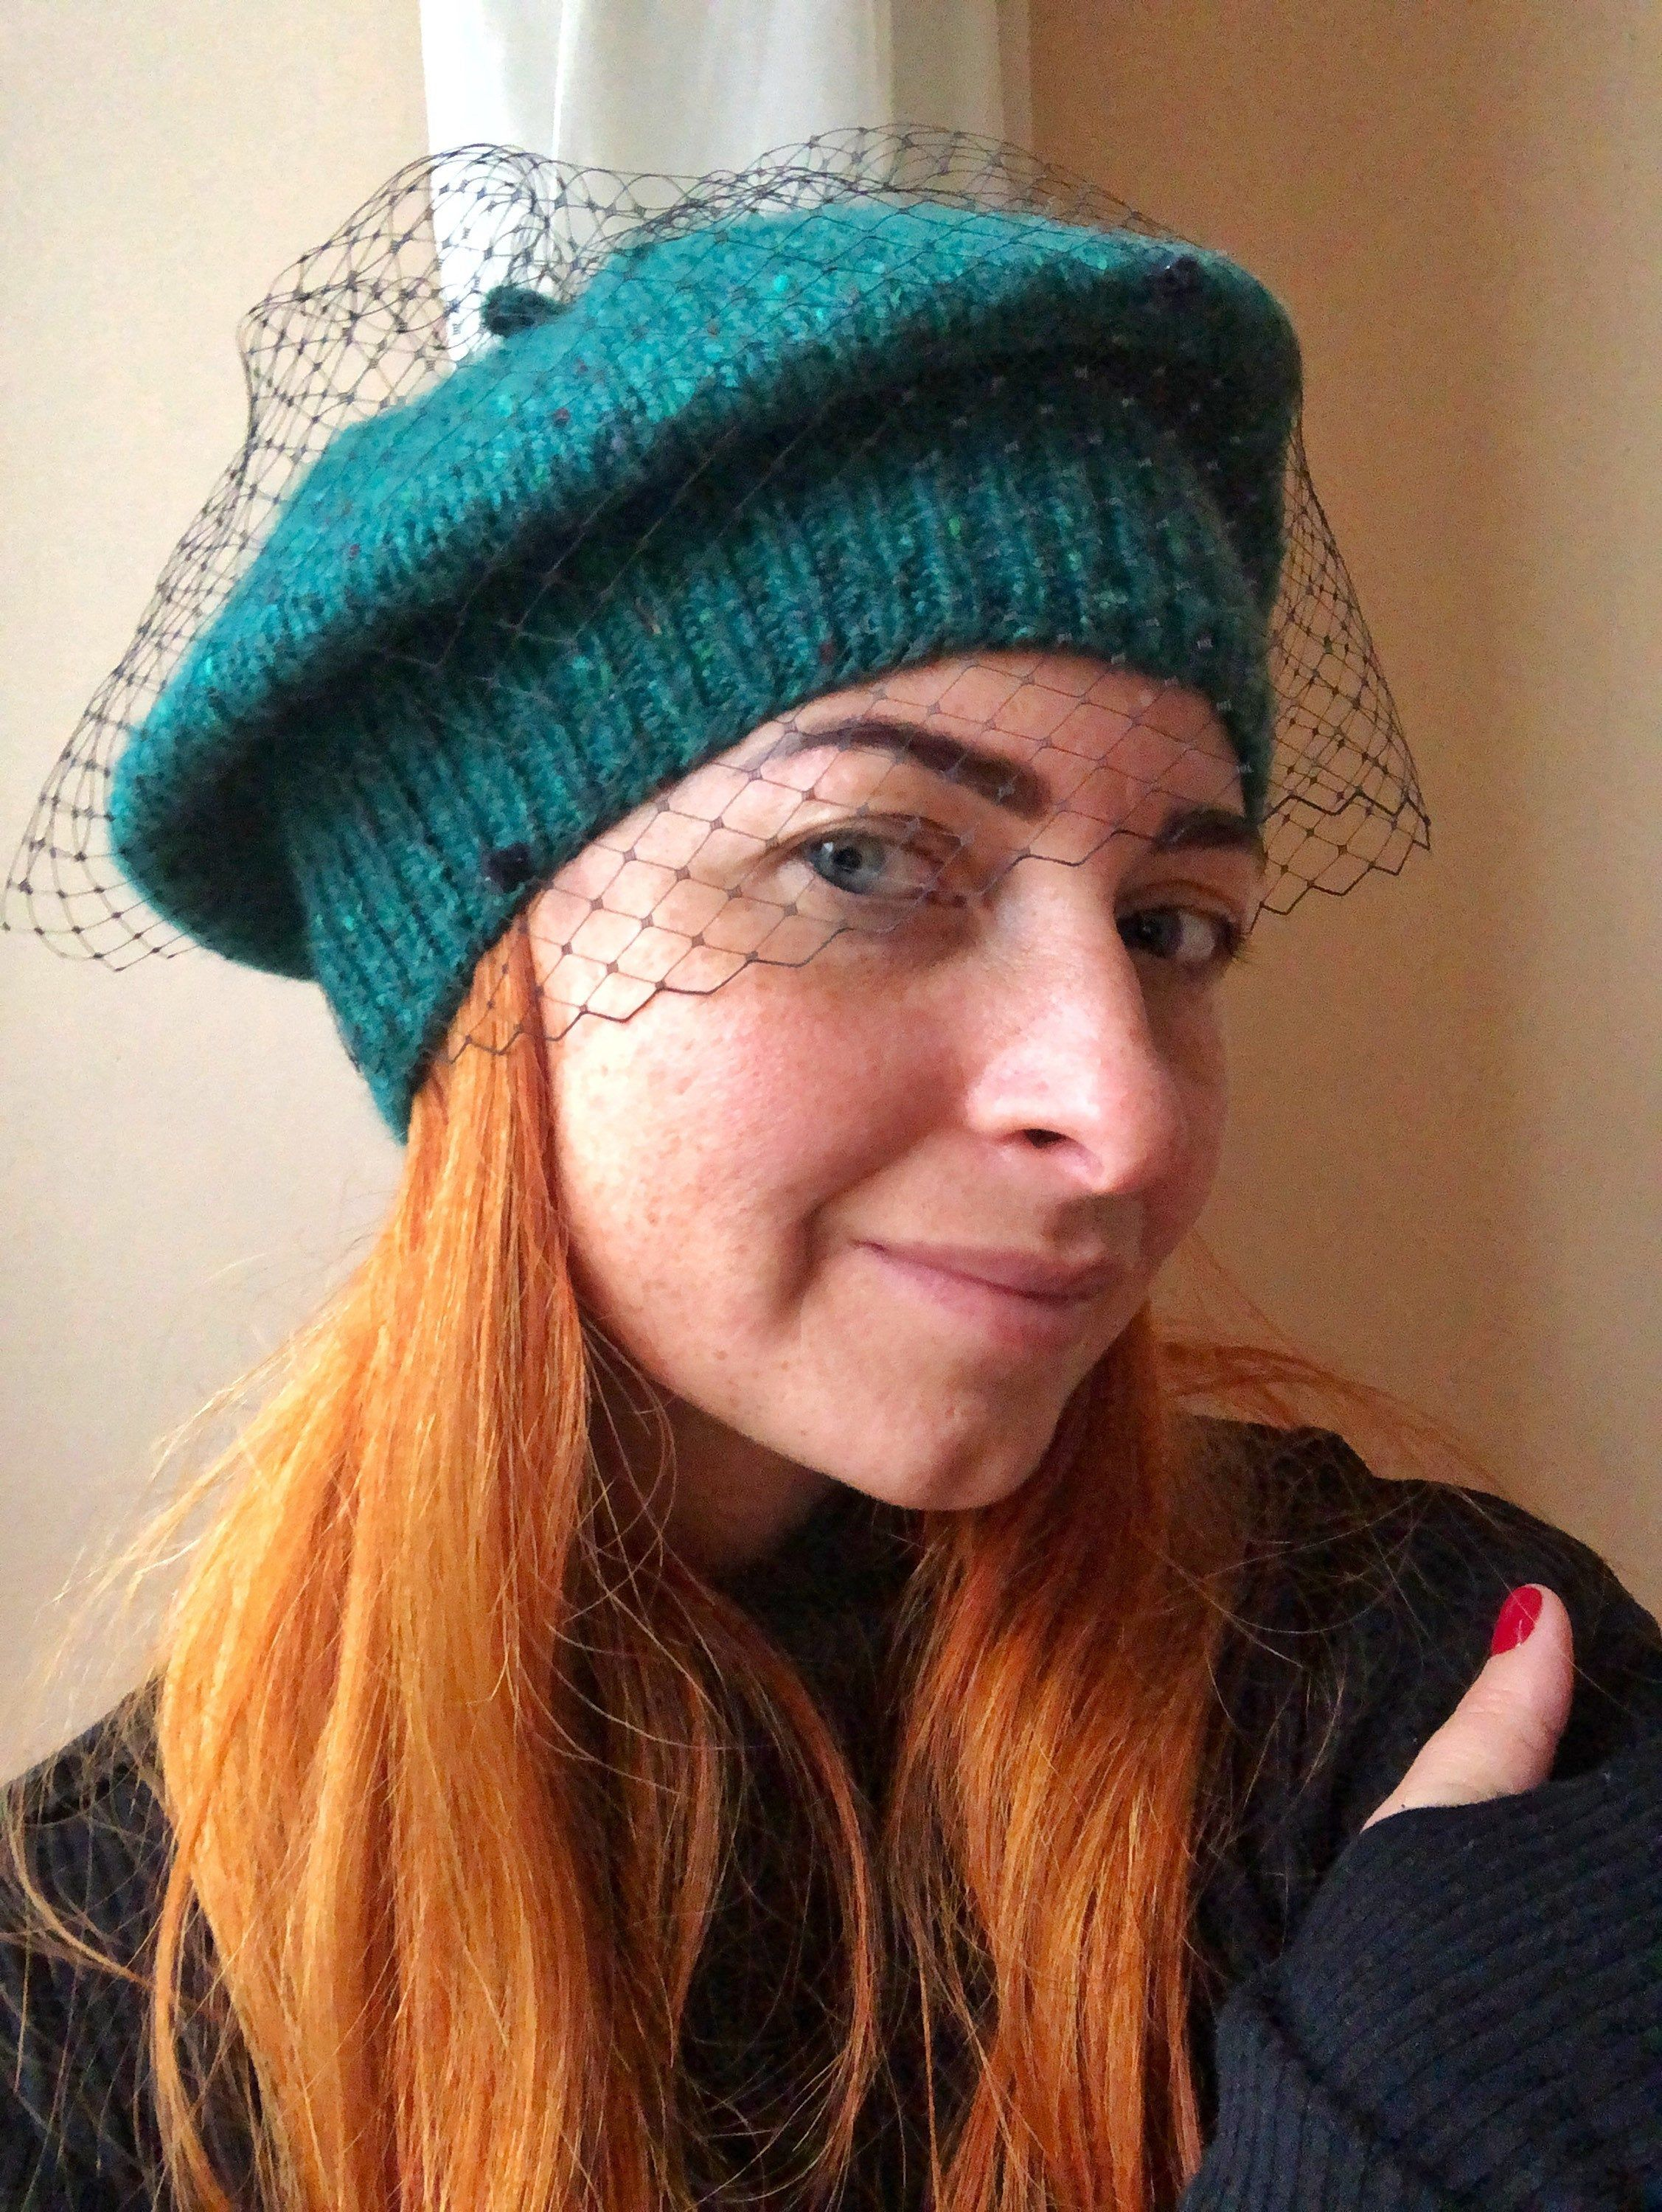 Green Tweed Knit Beret With Veil For Women And Girls Pretty Hats Women Hats Fashion Knitted Beret